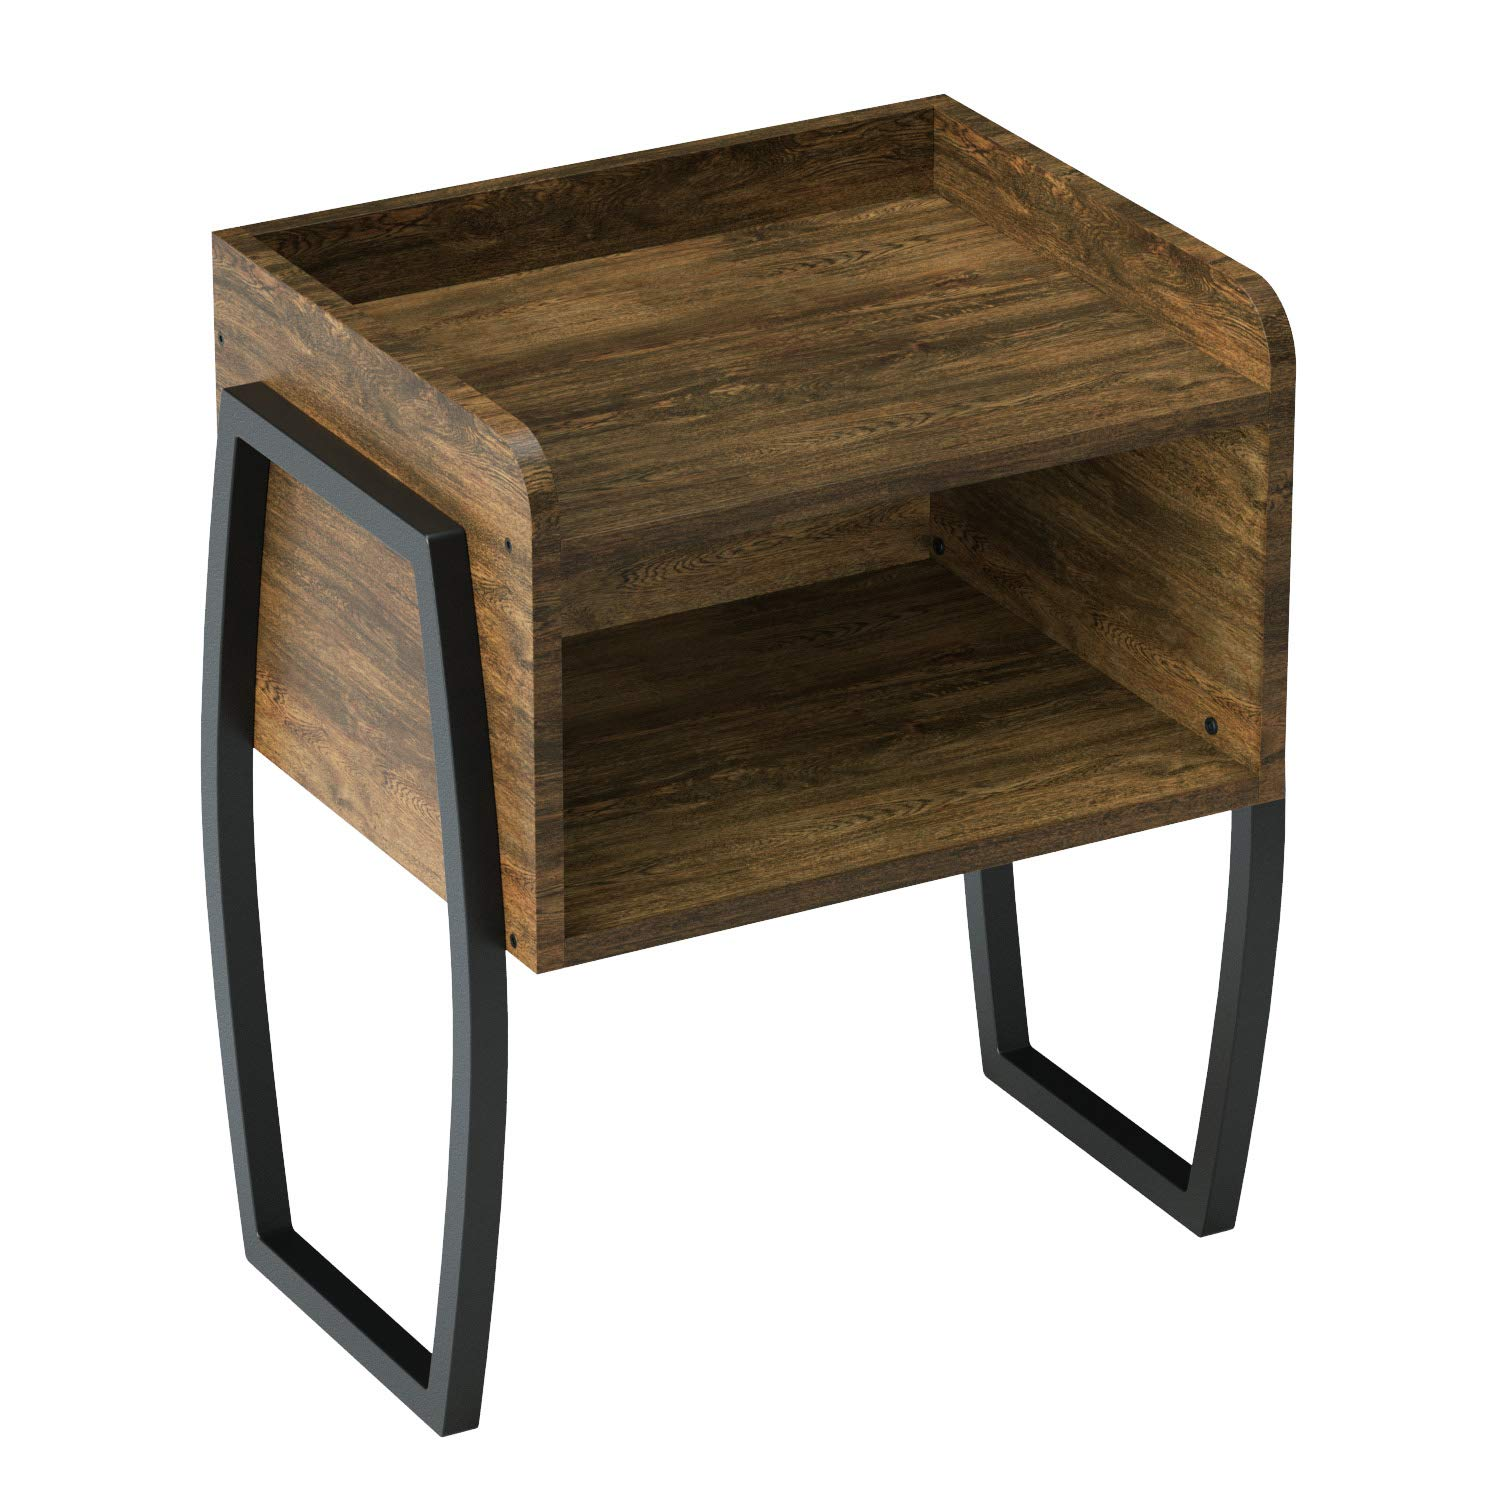 Vintage Nightstand, Side End Table for Small Spaces, Cabinet for Storage, Dark Walnut